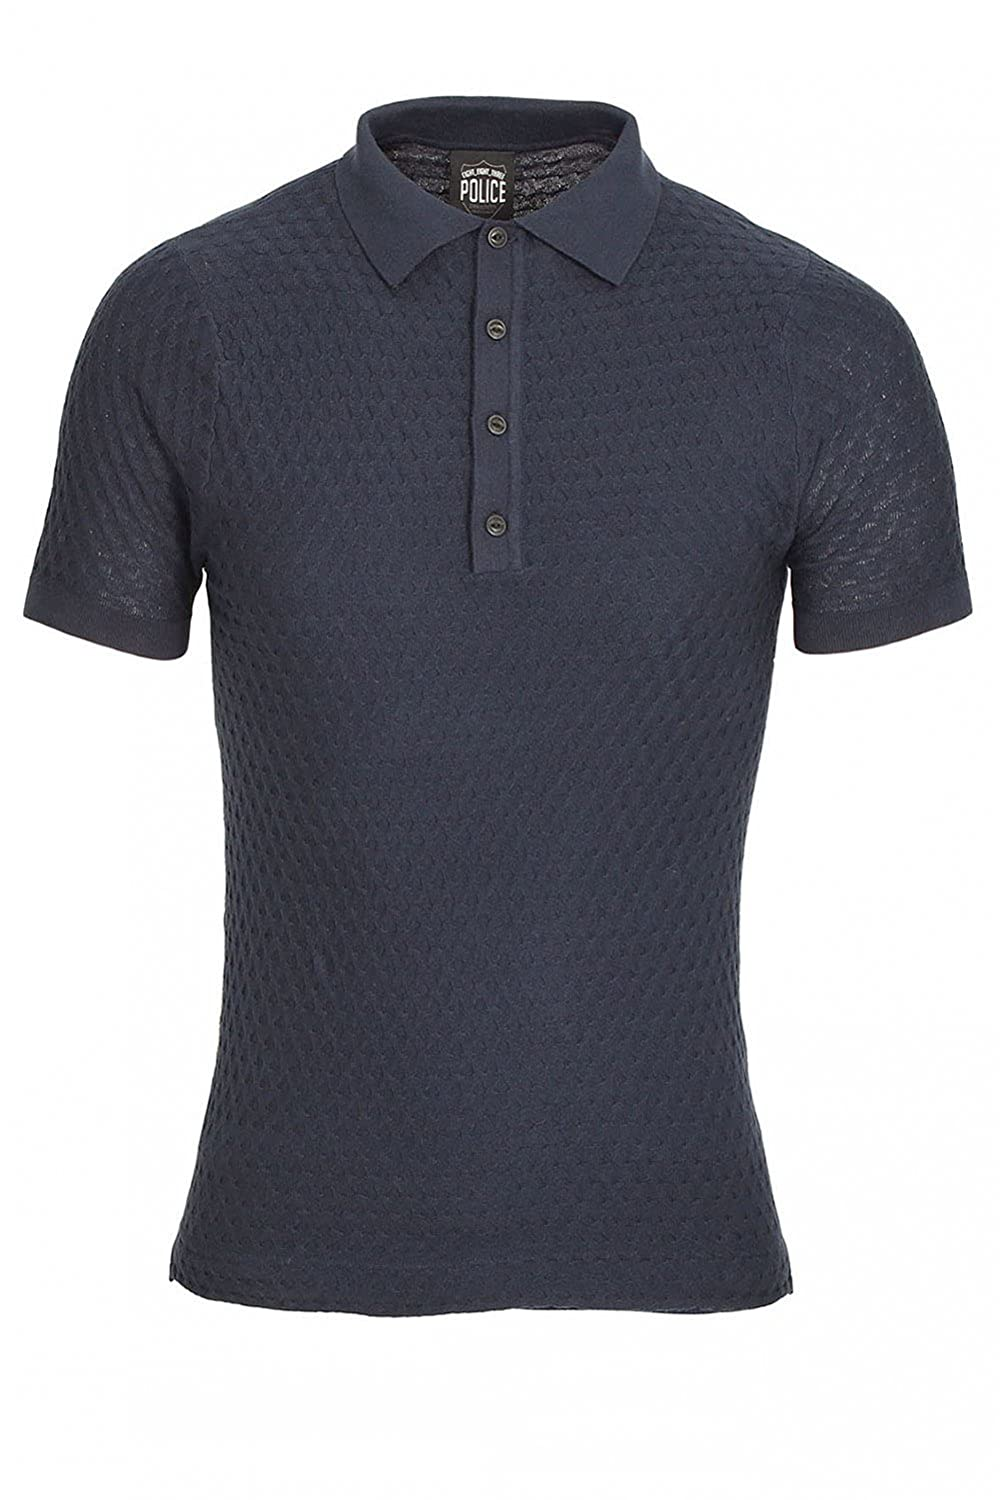 883 Police Wang Polo Shirt XXLarge Navy: Amazon.es: Ropa y accesorios